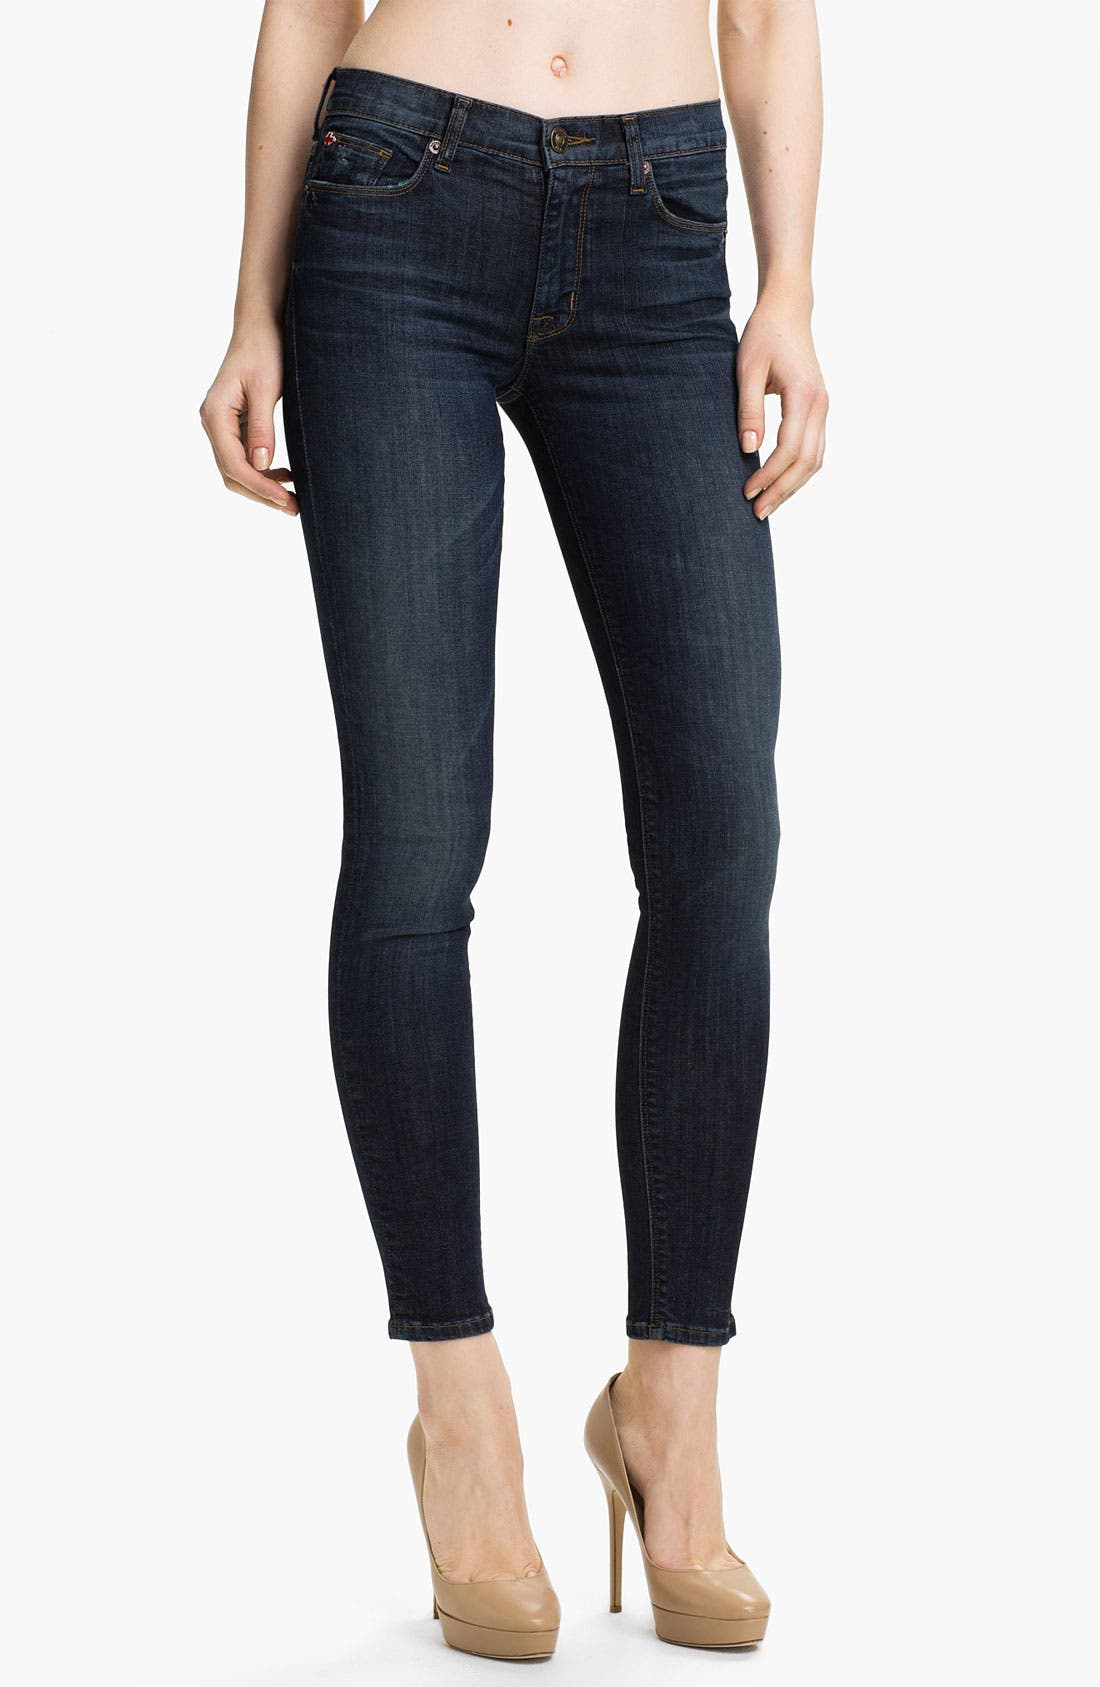 Alternate Image 1 Selected - Hudson Jeans 'Nico' Mid Rise Skinny Jeans (Hoxton)